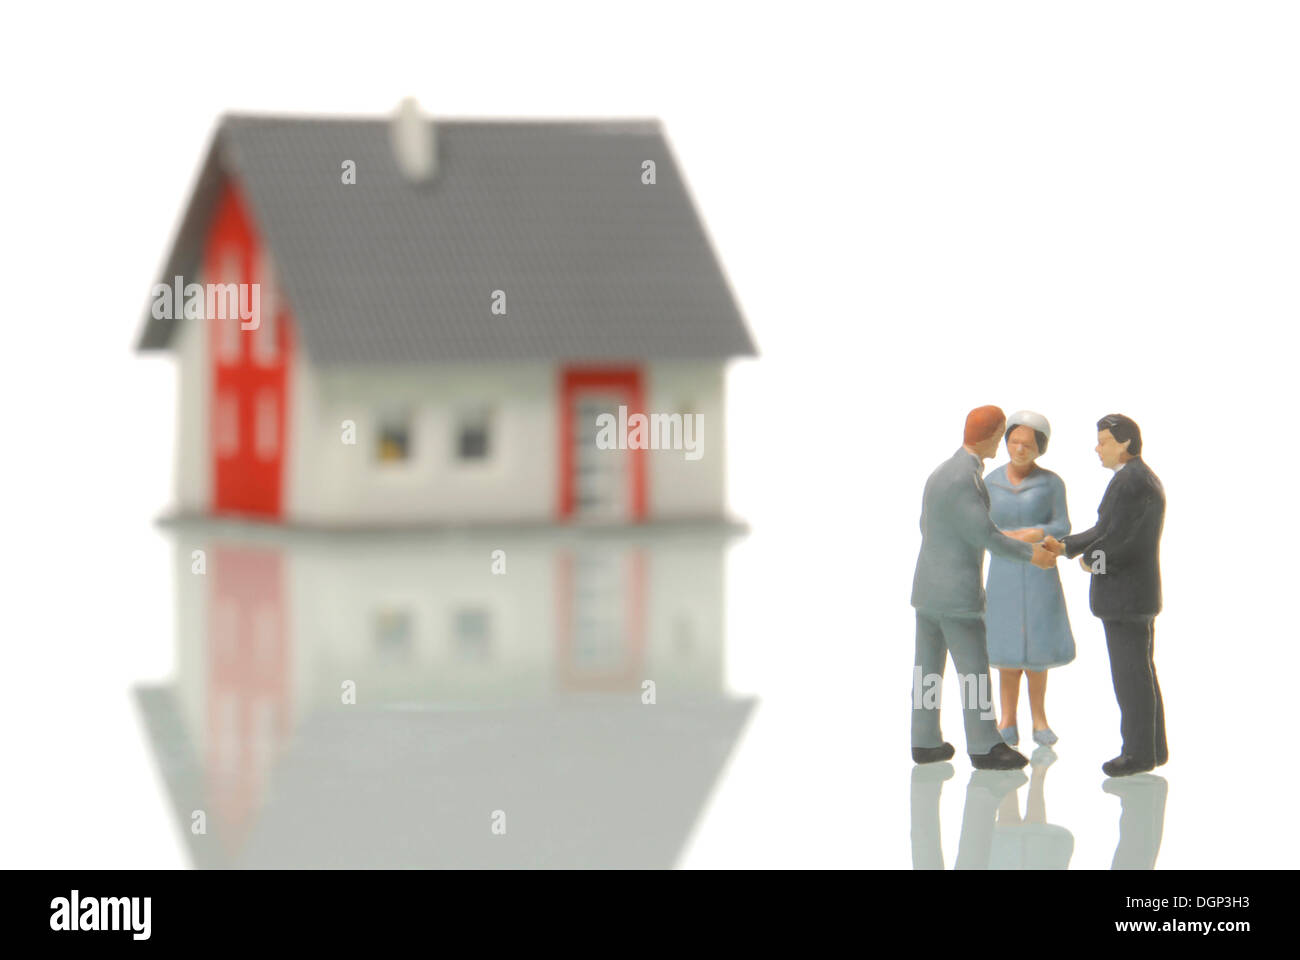 Couple buying a house from a realtor, figurines, a blurred house in the back, symbolic image for the real estate market Stock Photo